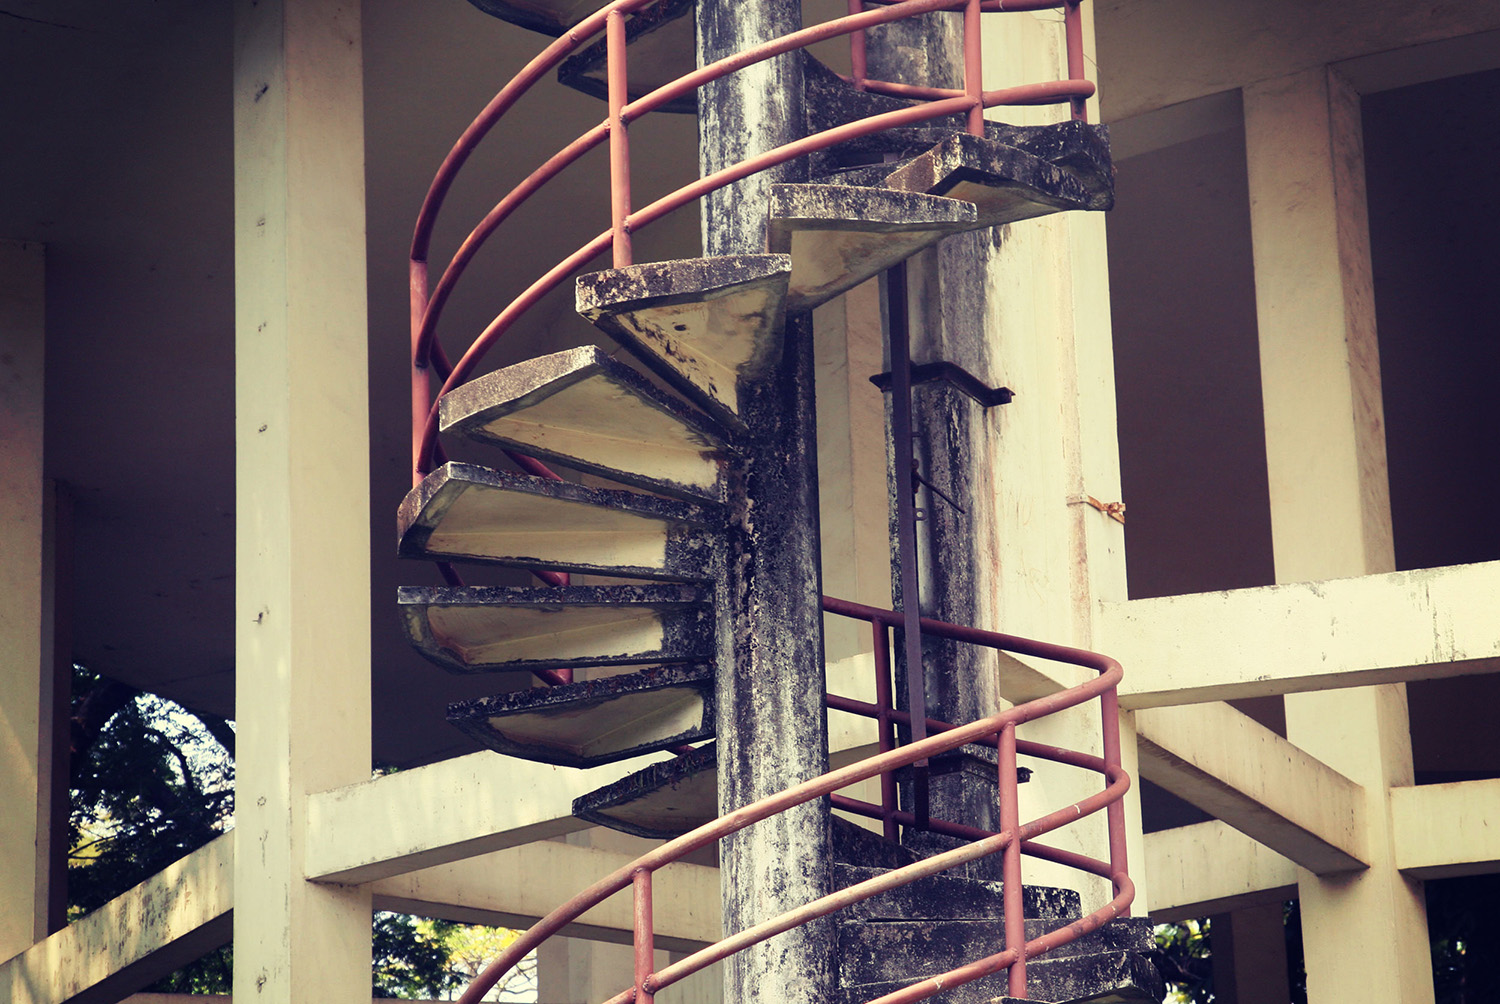 Concrete Water Tower Staircase, Kerala Backwaters, India. Photo credit: babyelephant